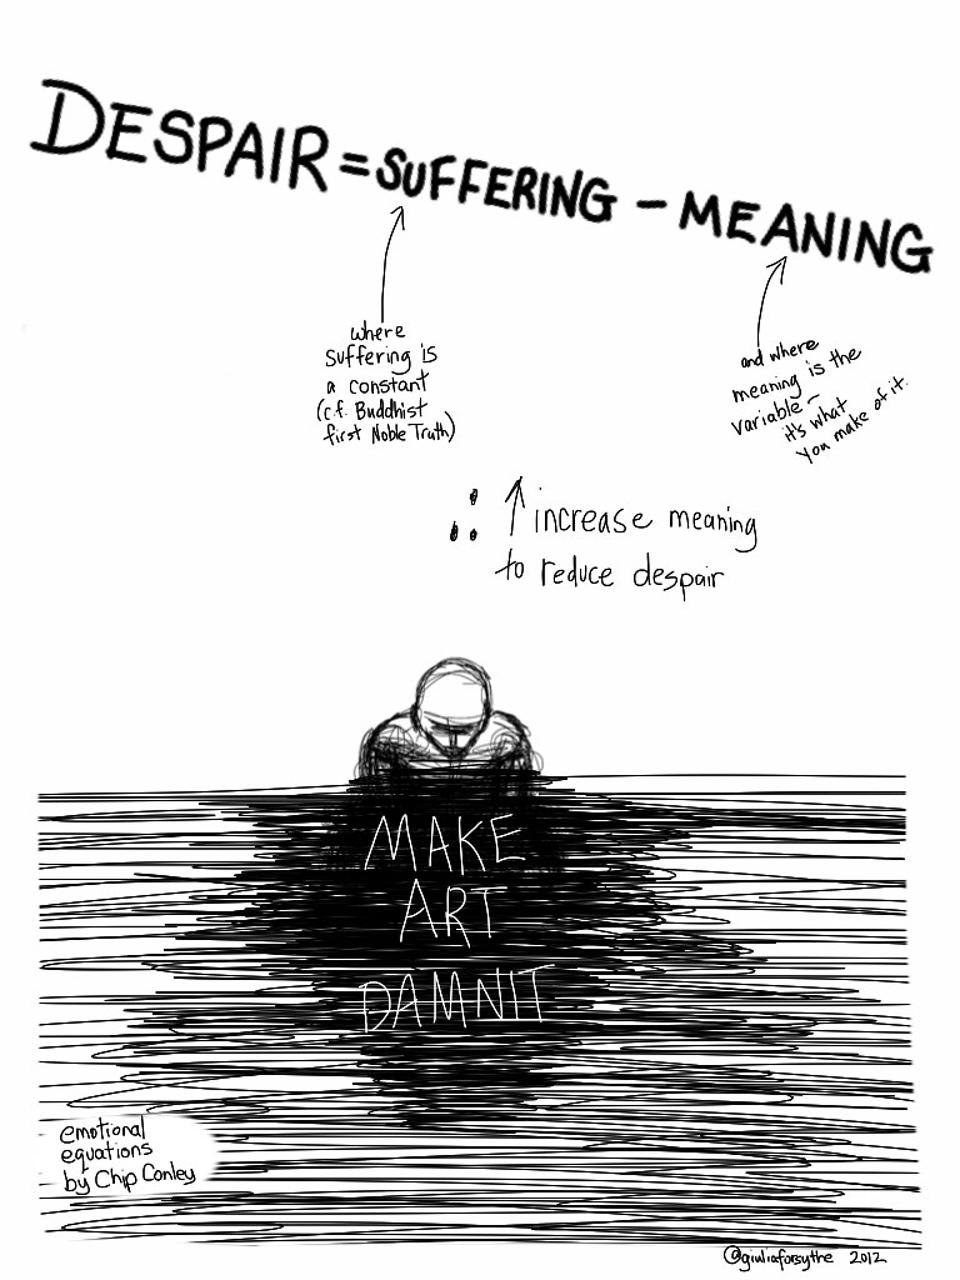 Viktor Frankl says we can avoid despair by making meaning of our suffering.